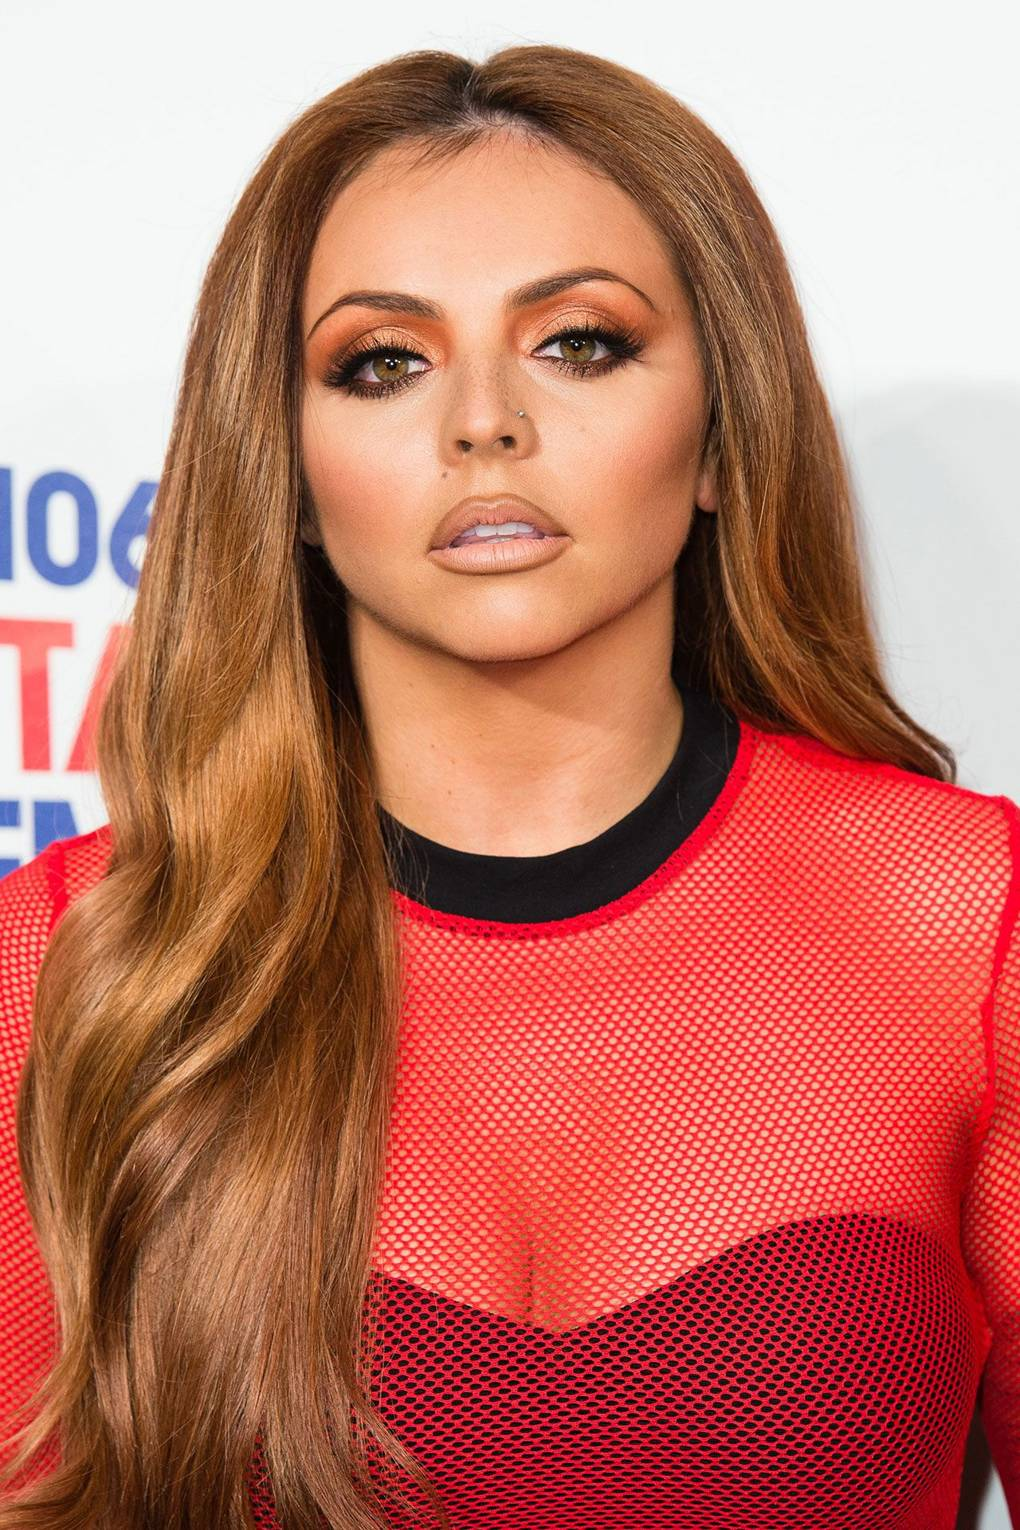 Paparazzi Fotos Jesy Nelson naked photo 2017